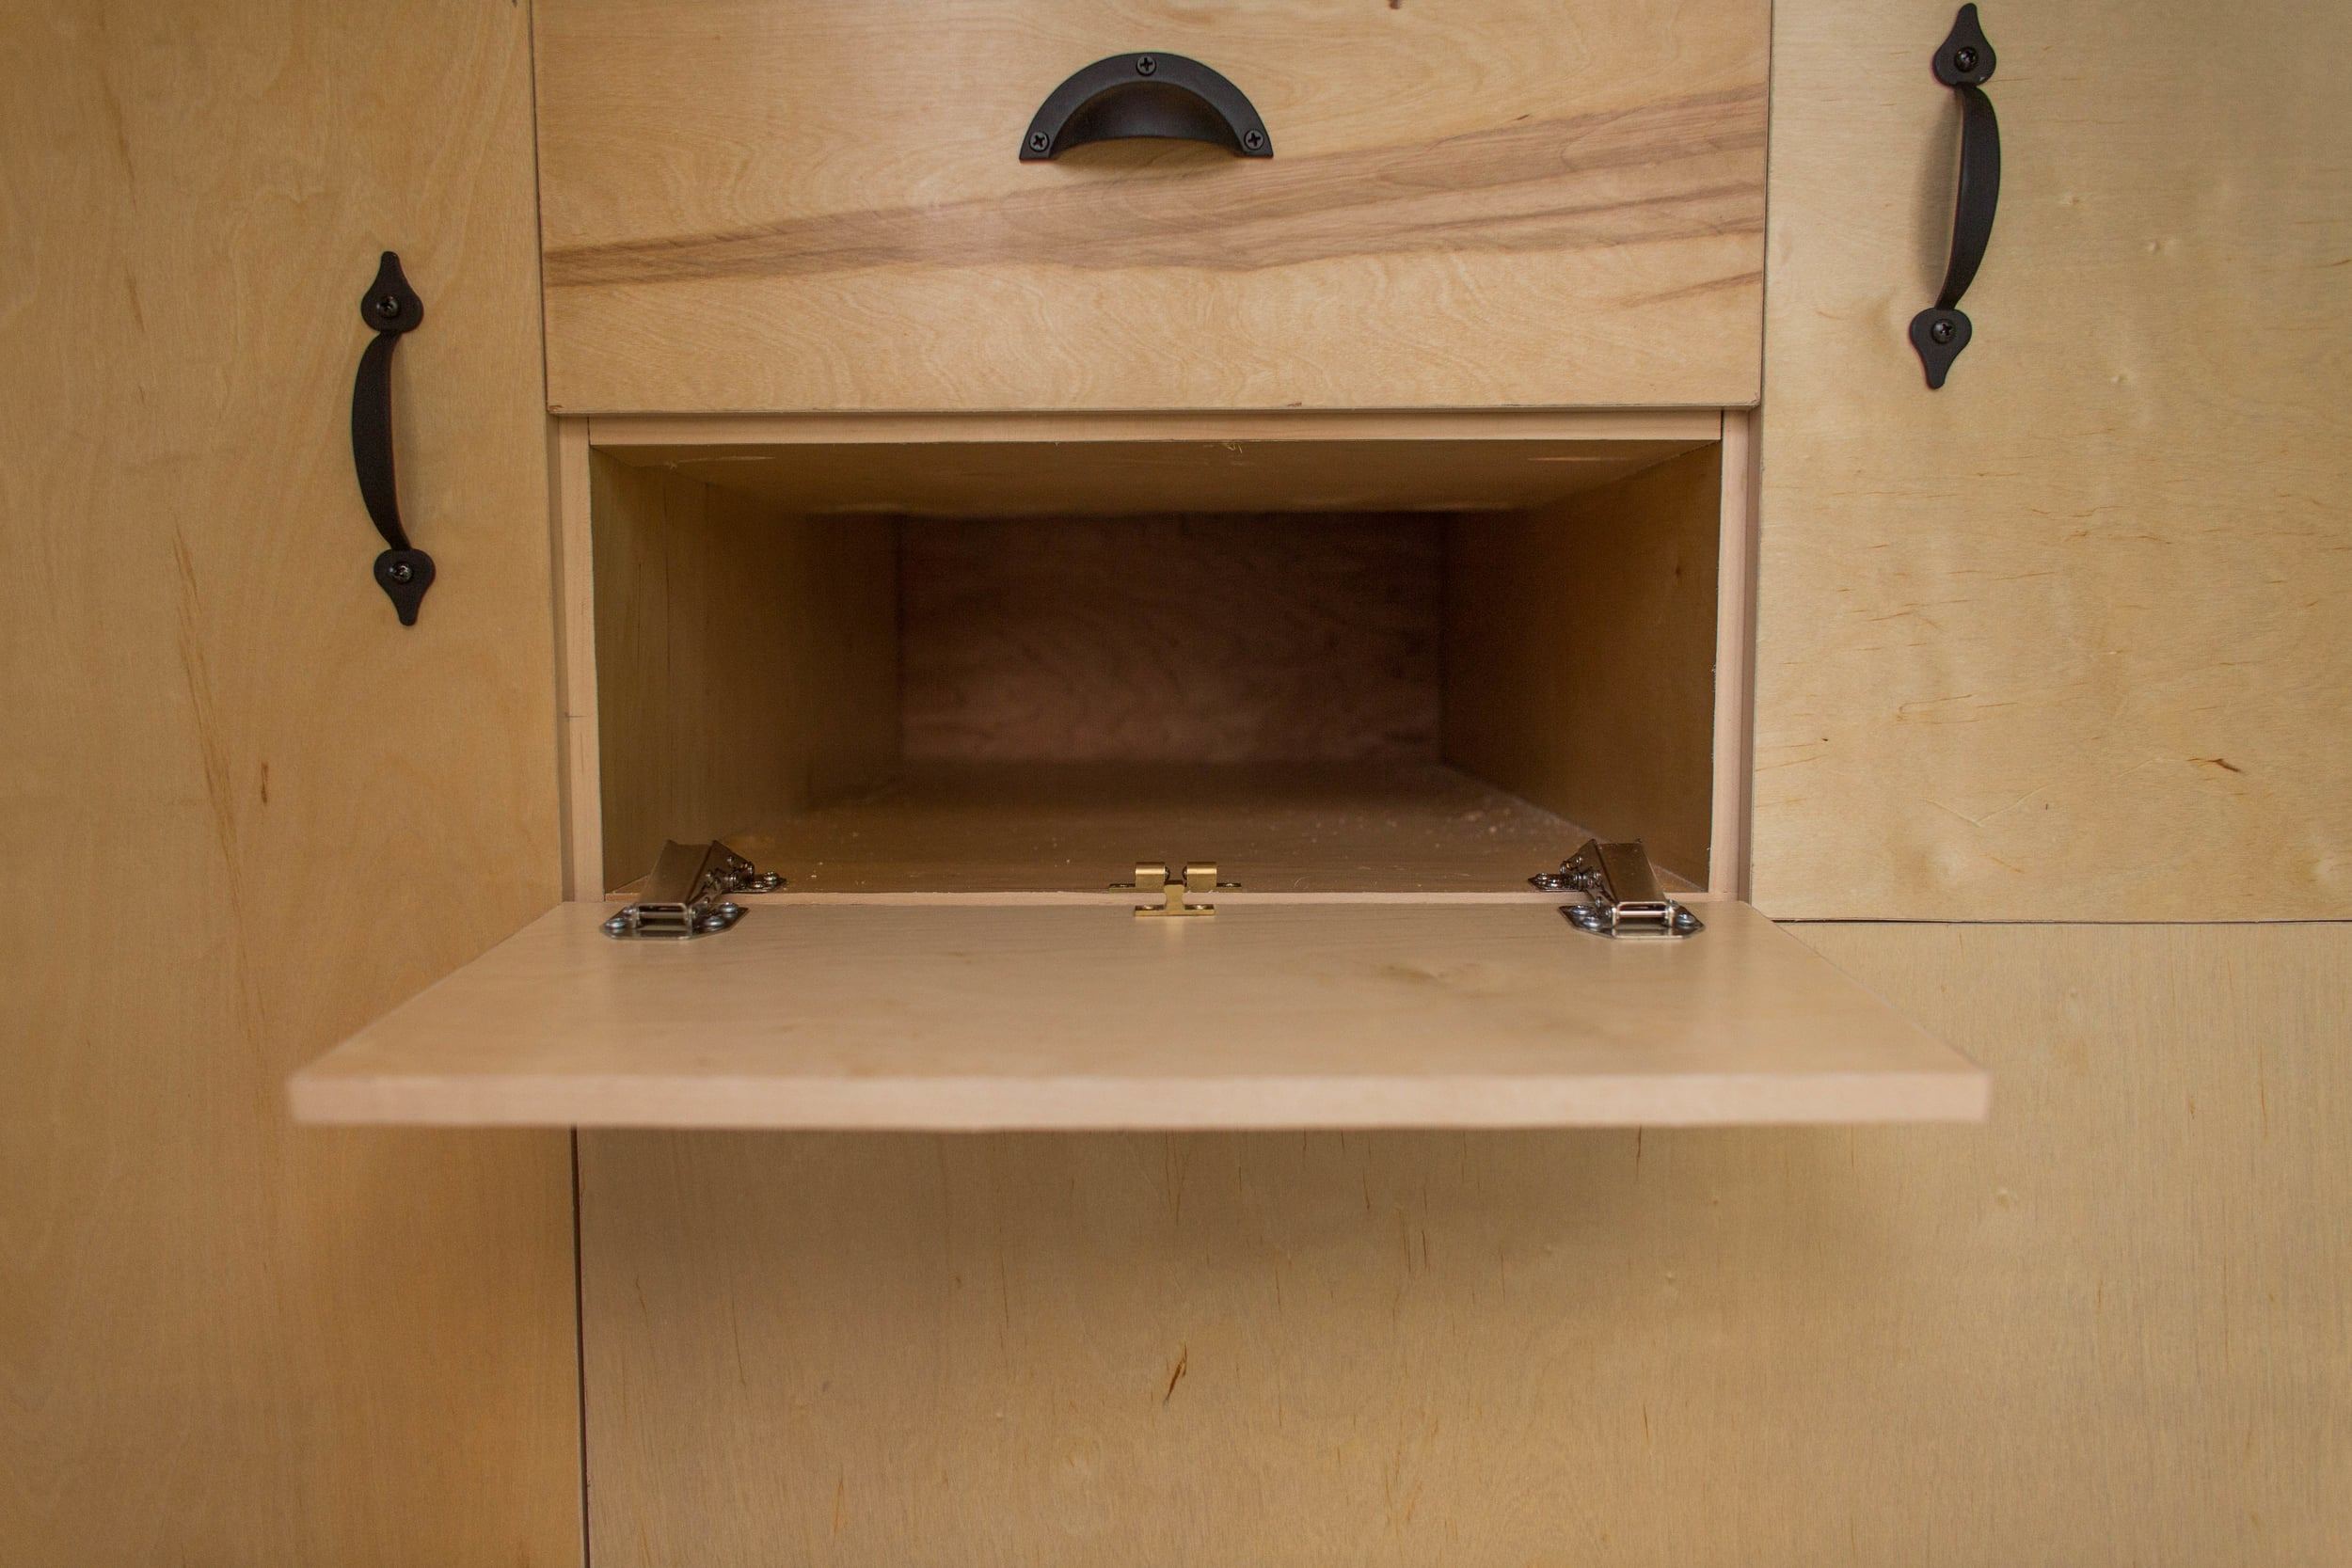 Flipdown compartment to store dishes and cookware.  Brass latch can be seen in the middle